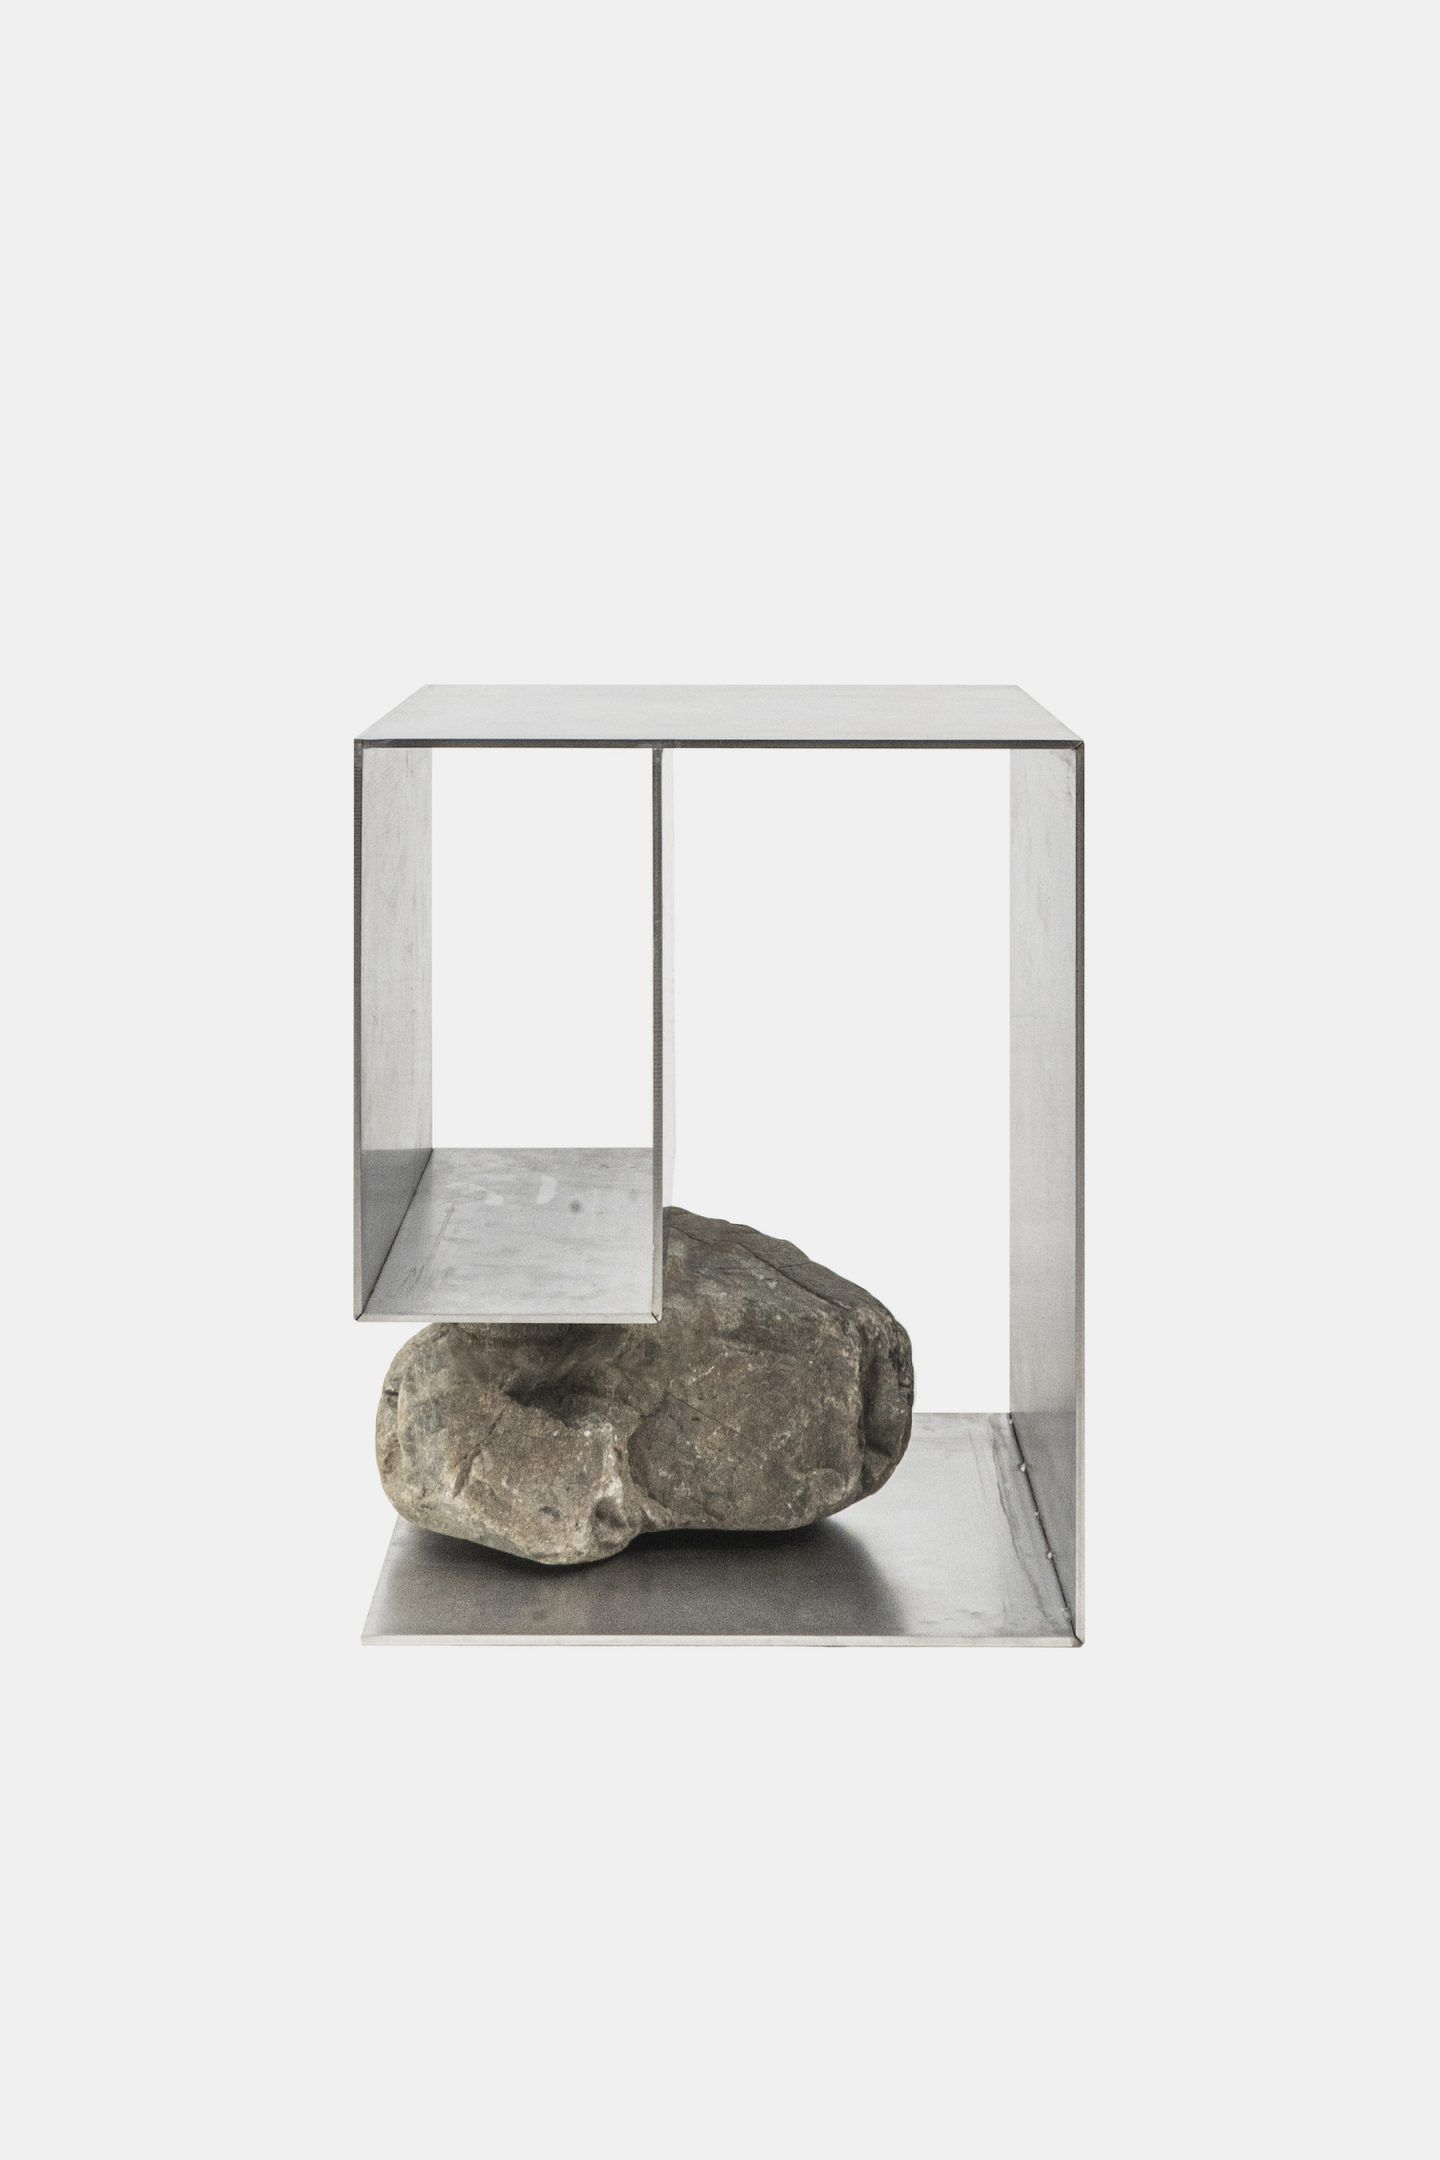 IGNANT-Design-Sisan-Lee-Proportions-Of-Stone-04